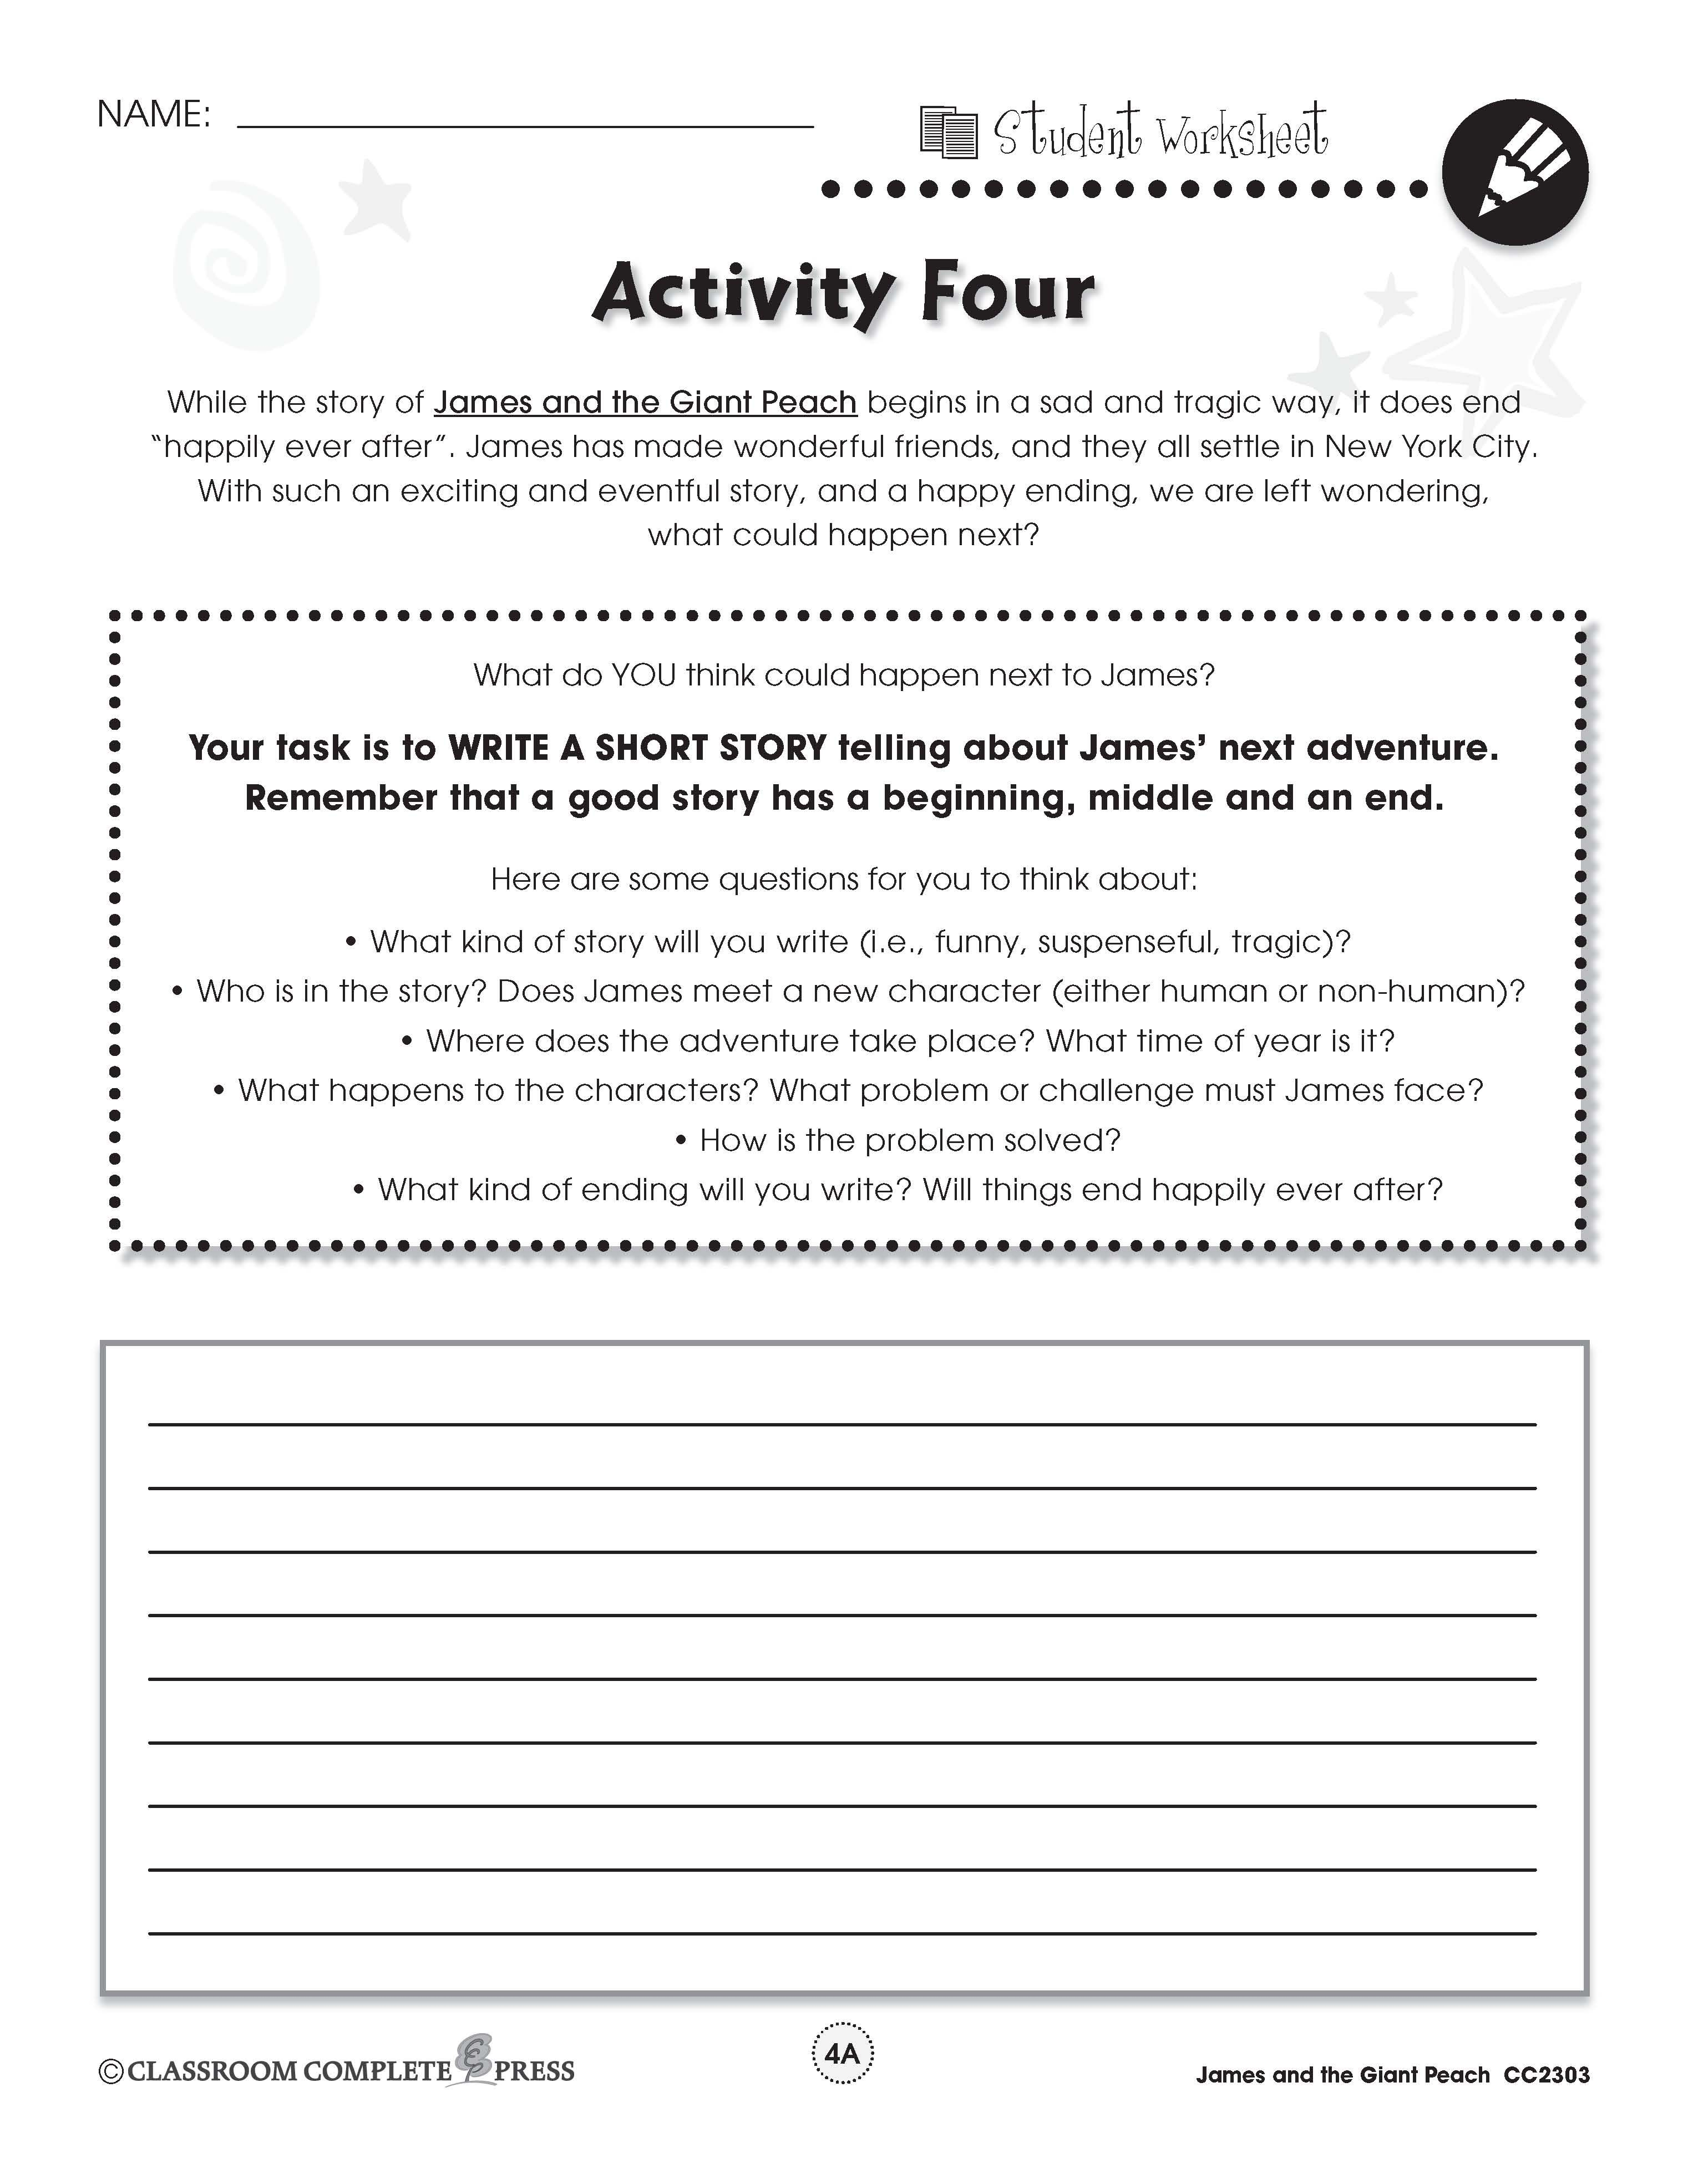 Write About James Next Adventure With This Free Activity